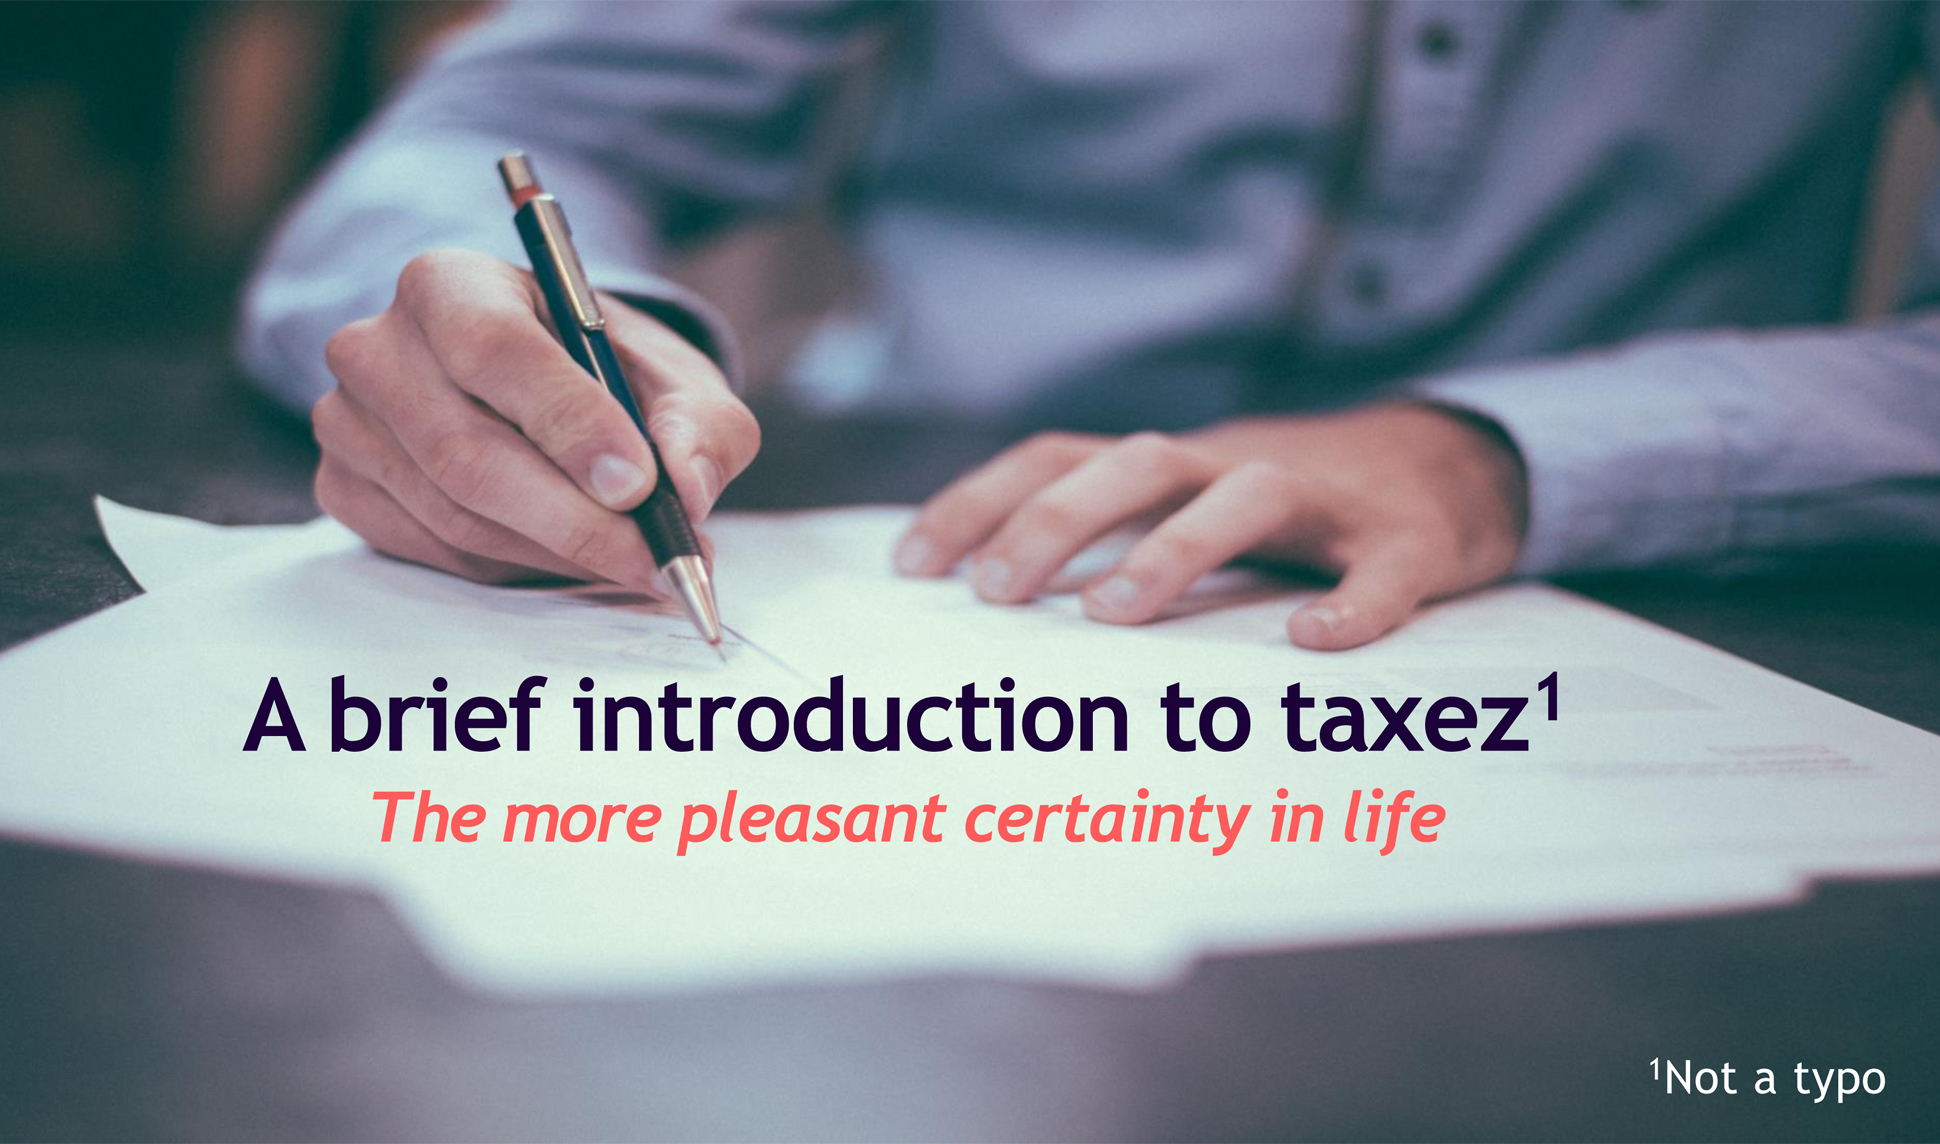 A page from a tax design challenge submission. A brief introduction to taxez. A person is writing on paper in the background.